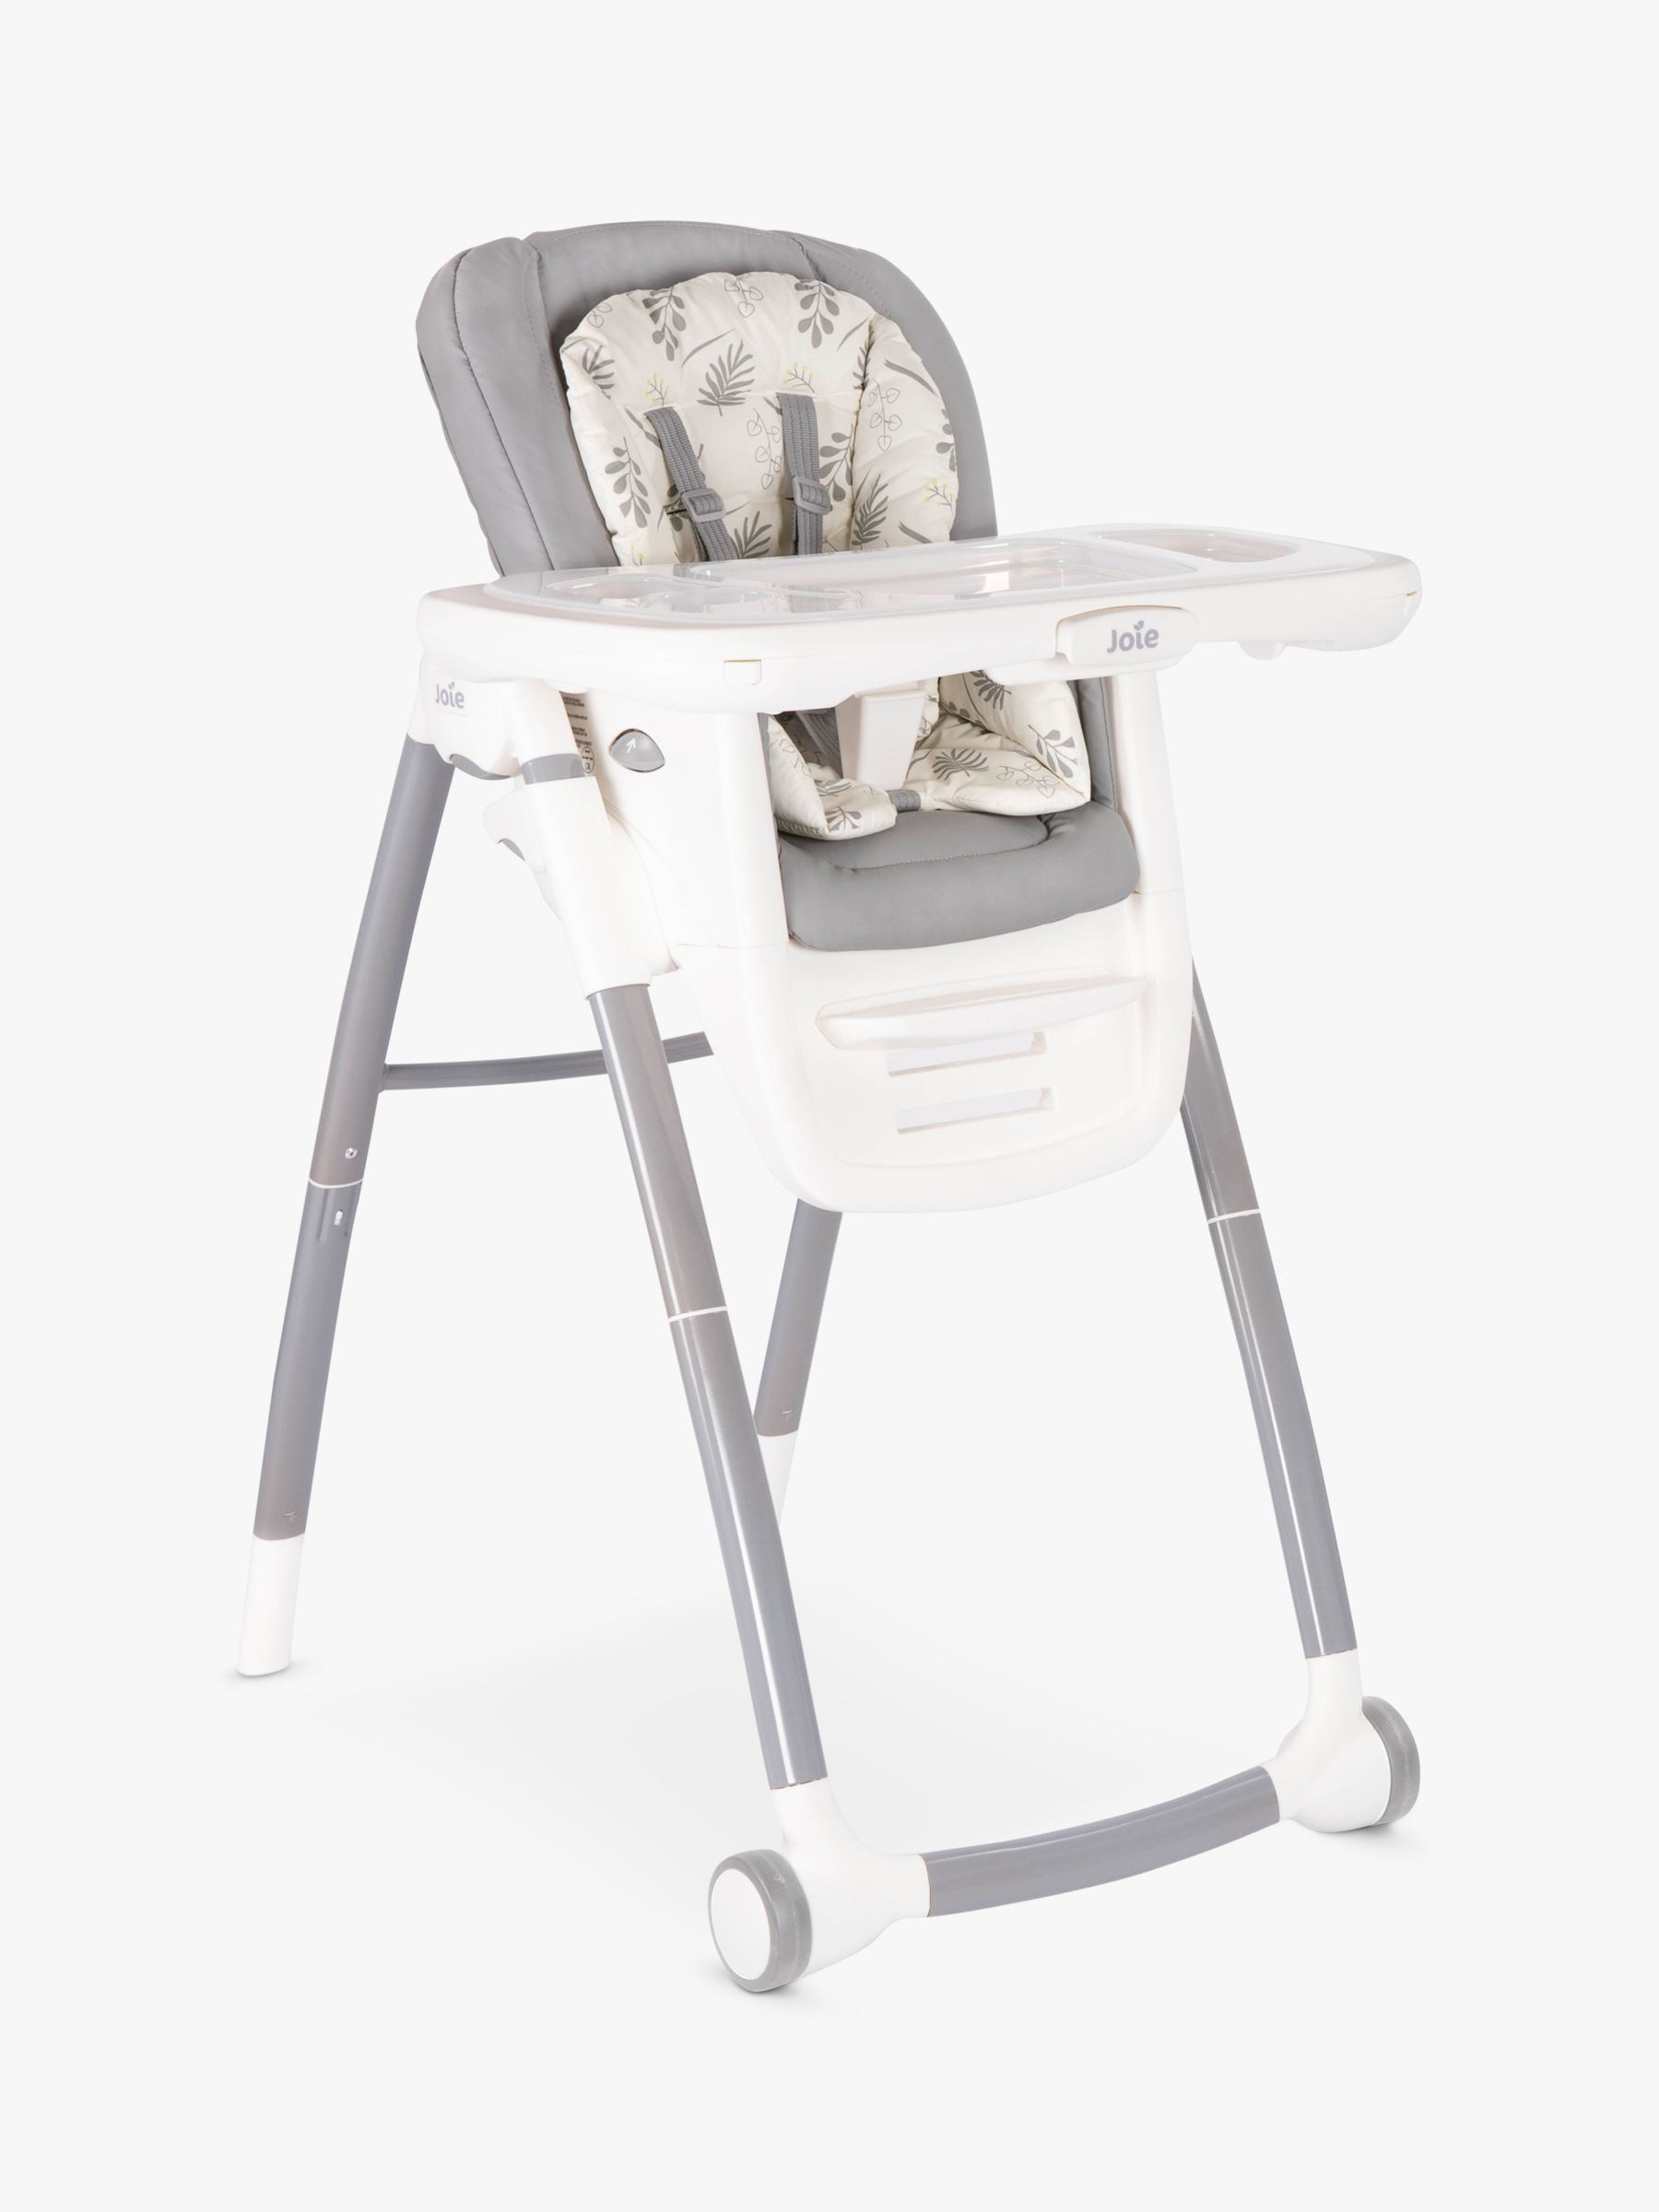 Joie Baby Joie Baby Multiply 6 in 1 Highchair, Fern